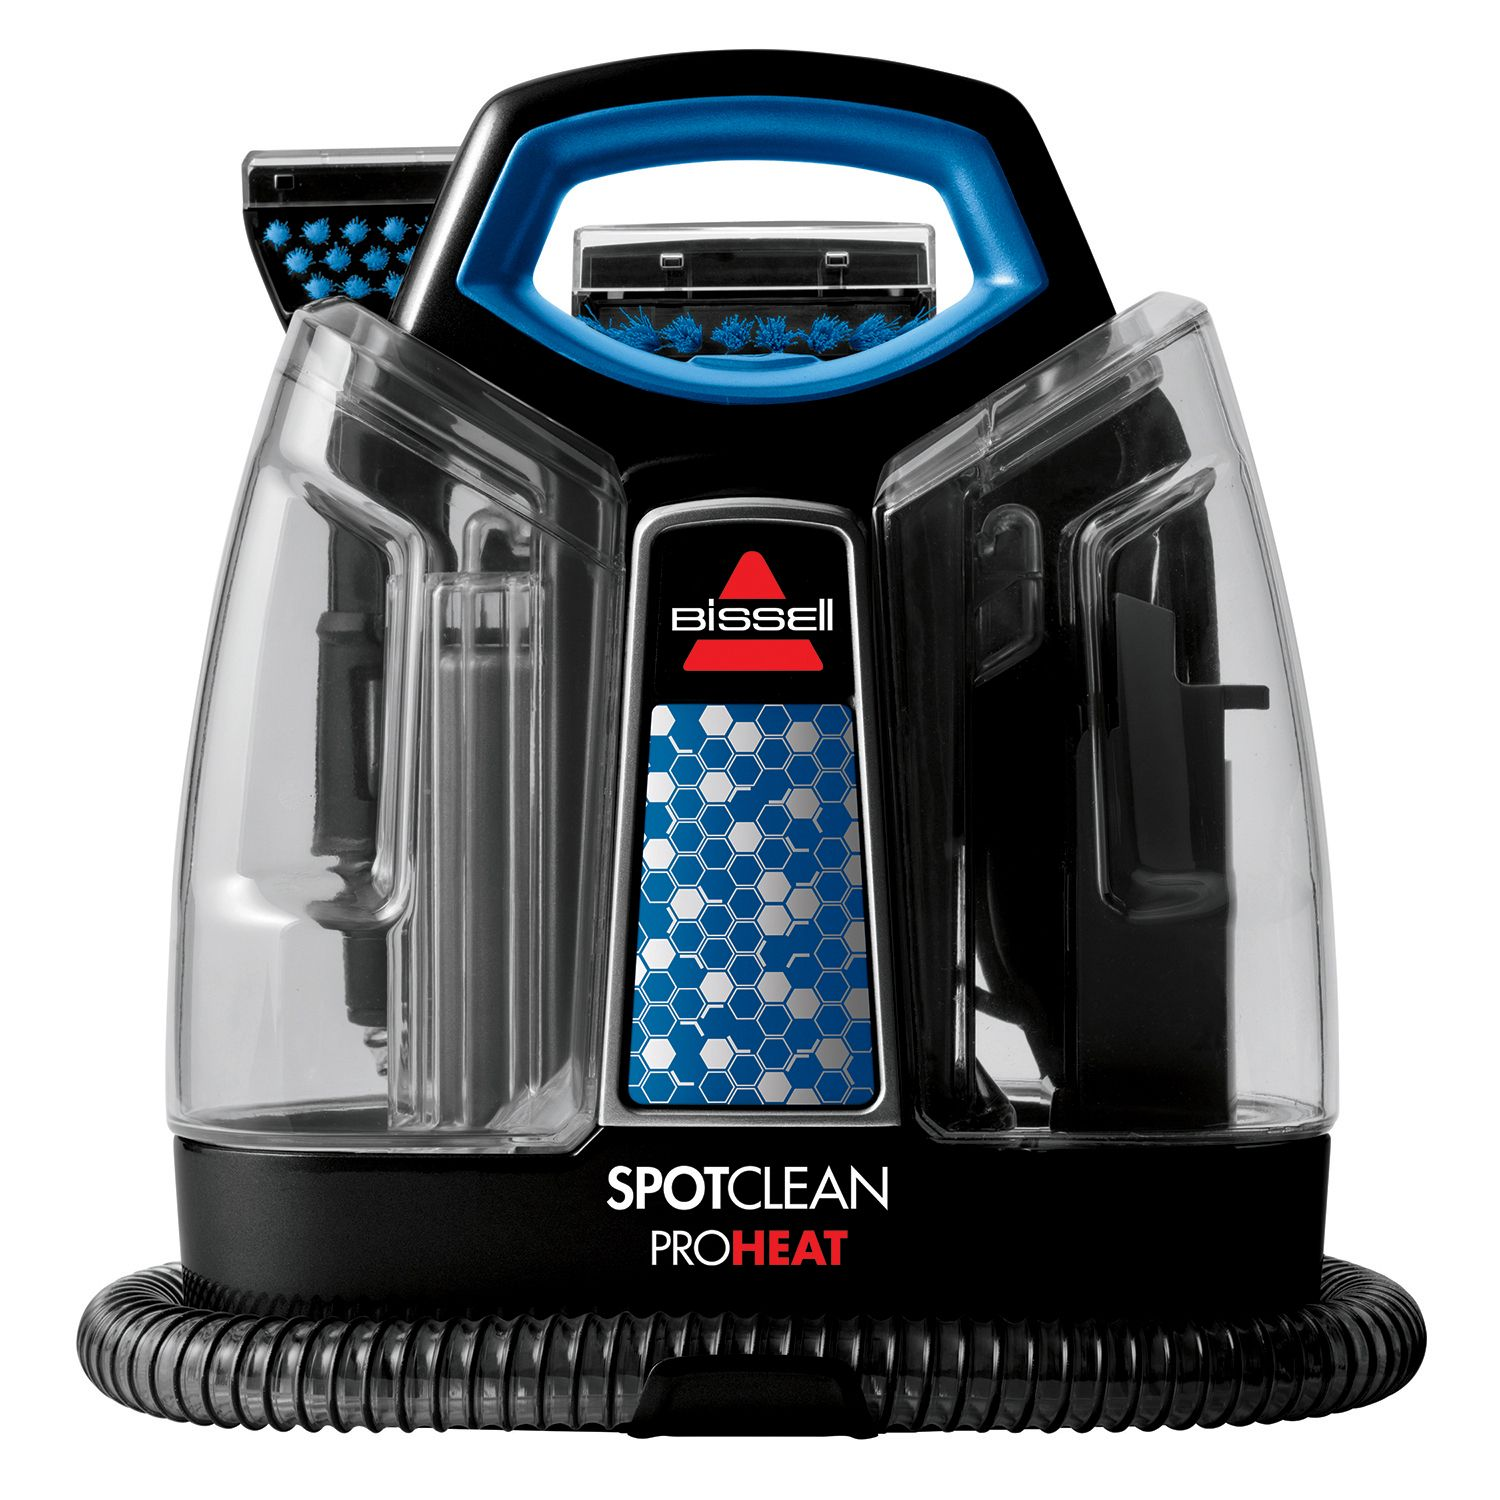 bissell spotclean proheat portable carpet cleaner - Green Machine Carpet Cleaner